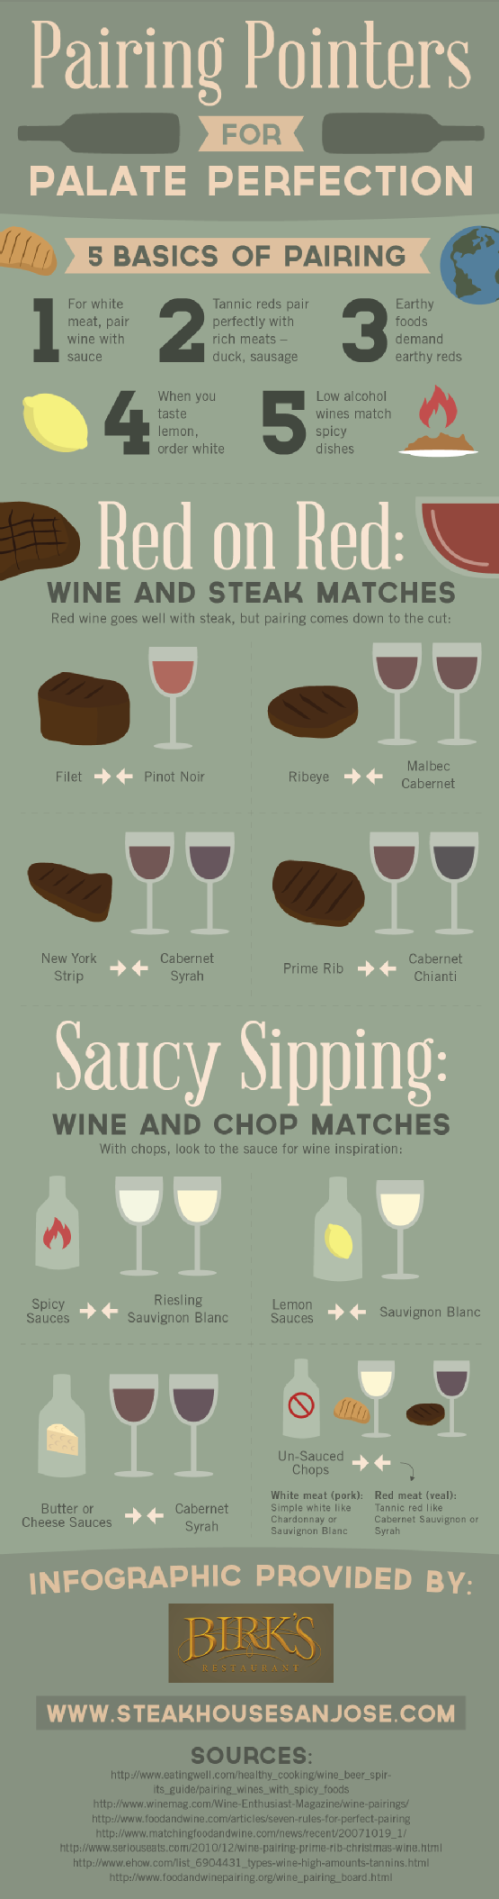 pairing-pointers-for-palate-perfection